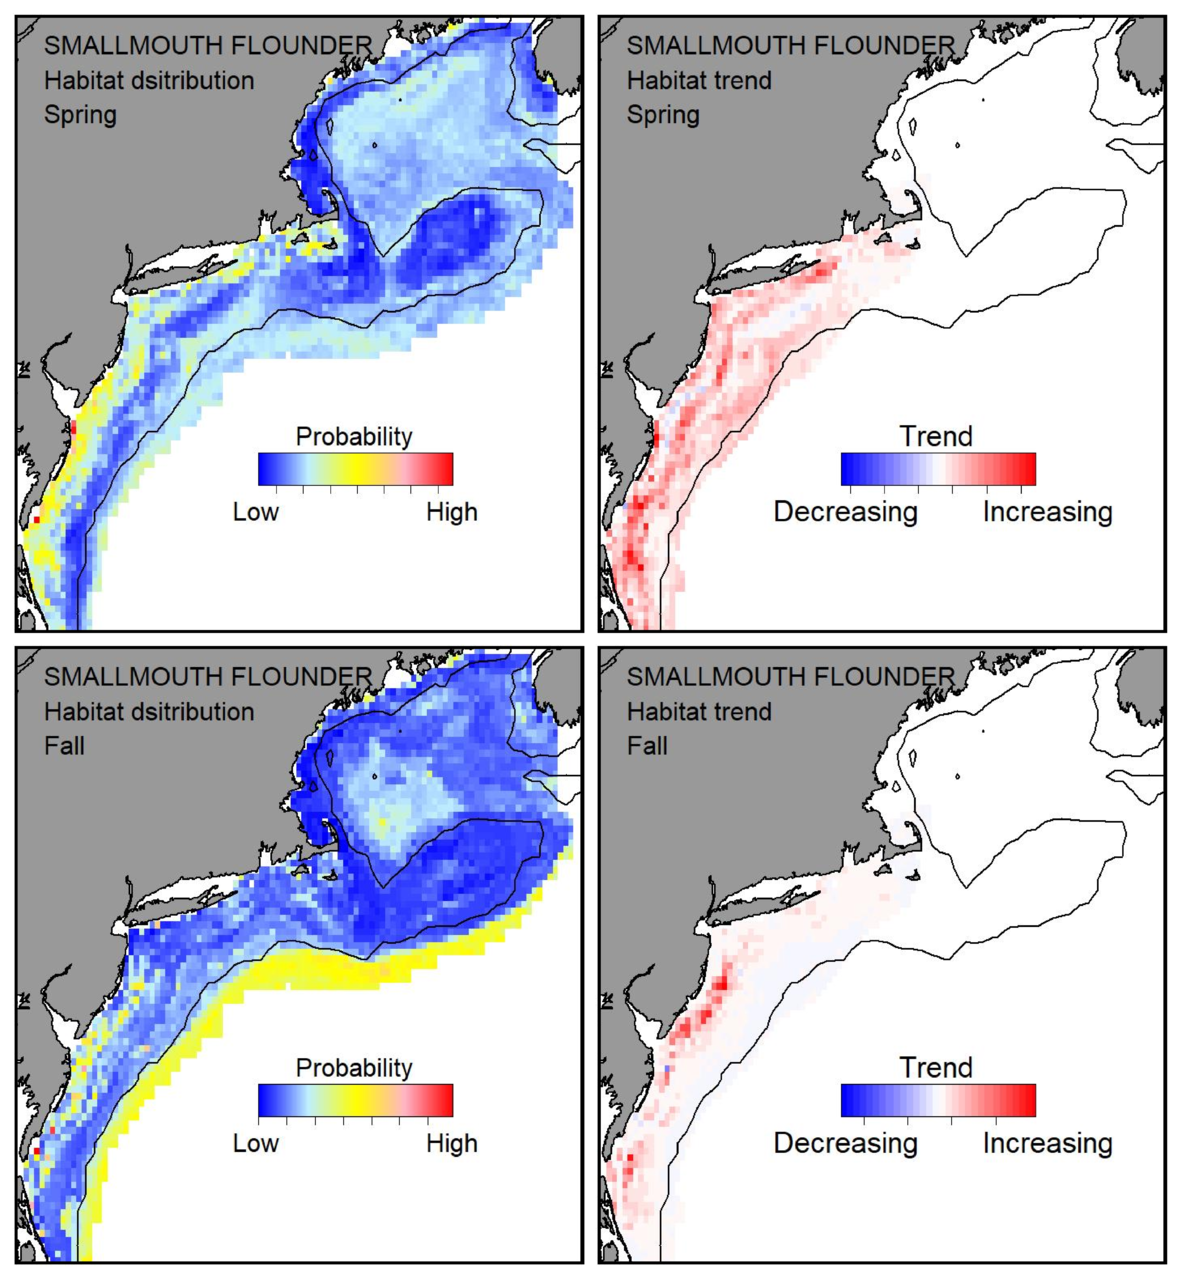 Probable habitat distribution for smallmouth flounder showing the highest concentration and increasing trend in the Gulf of Maine during the spring. Bottom row: Probable habitat distribution for smallmouth flounder showing the highest concentration and increasing trend in the Gulf of Maine during the fall.